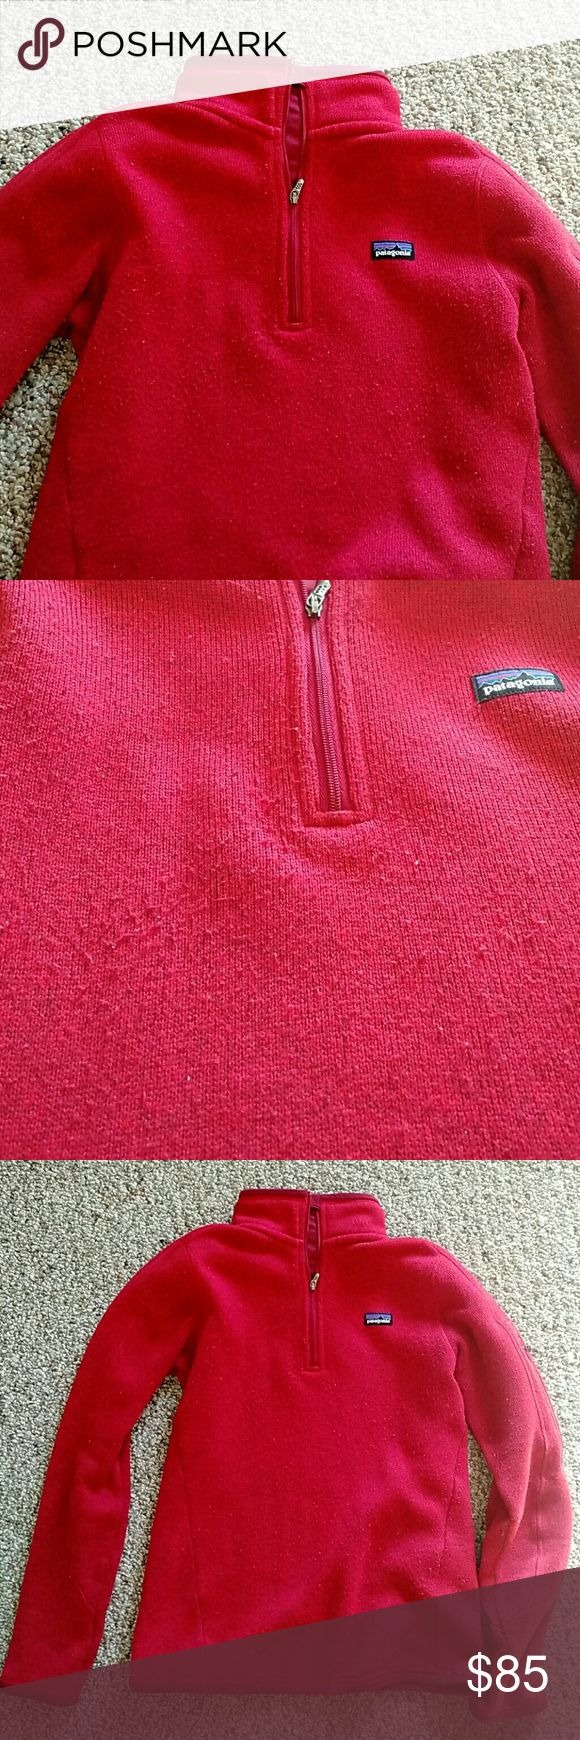 Black Friday Sale! Patagonia Better Sweater Burnt red color. Some piling, overall good shape. Warm and soft. Patagonia Sweaters